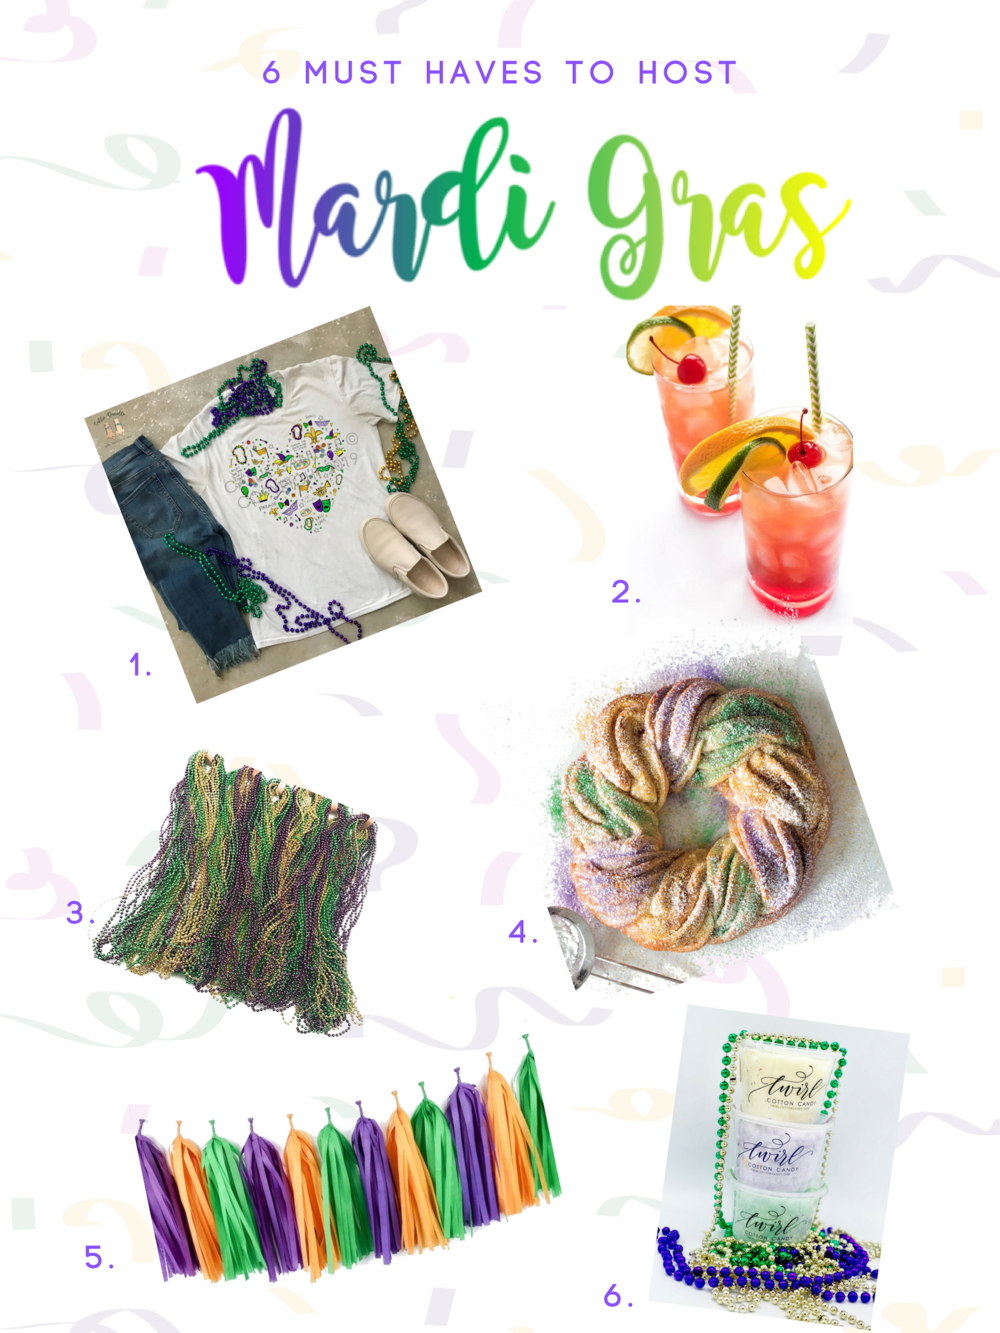 Mardi Gras - Things You Need to Party - Toast from the Host